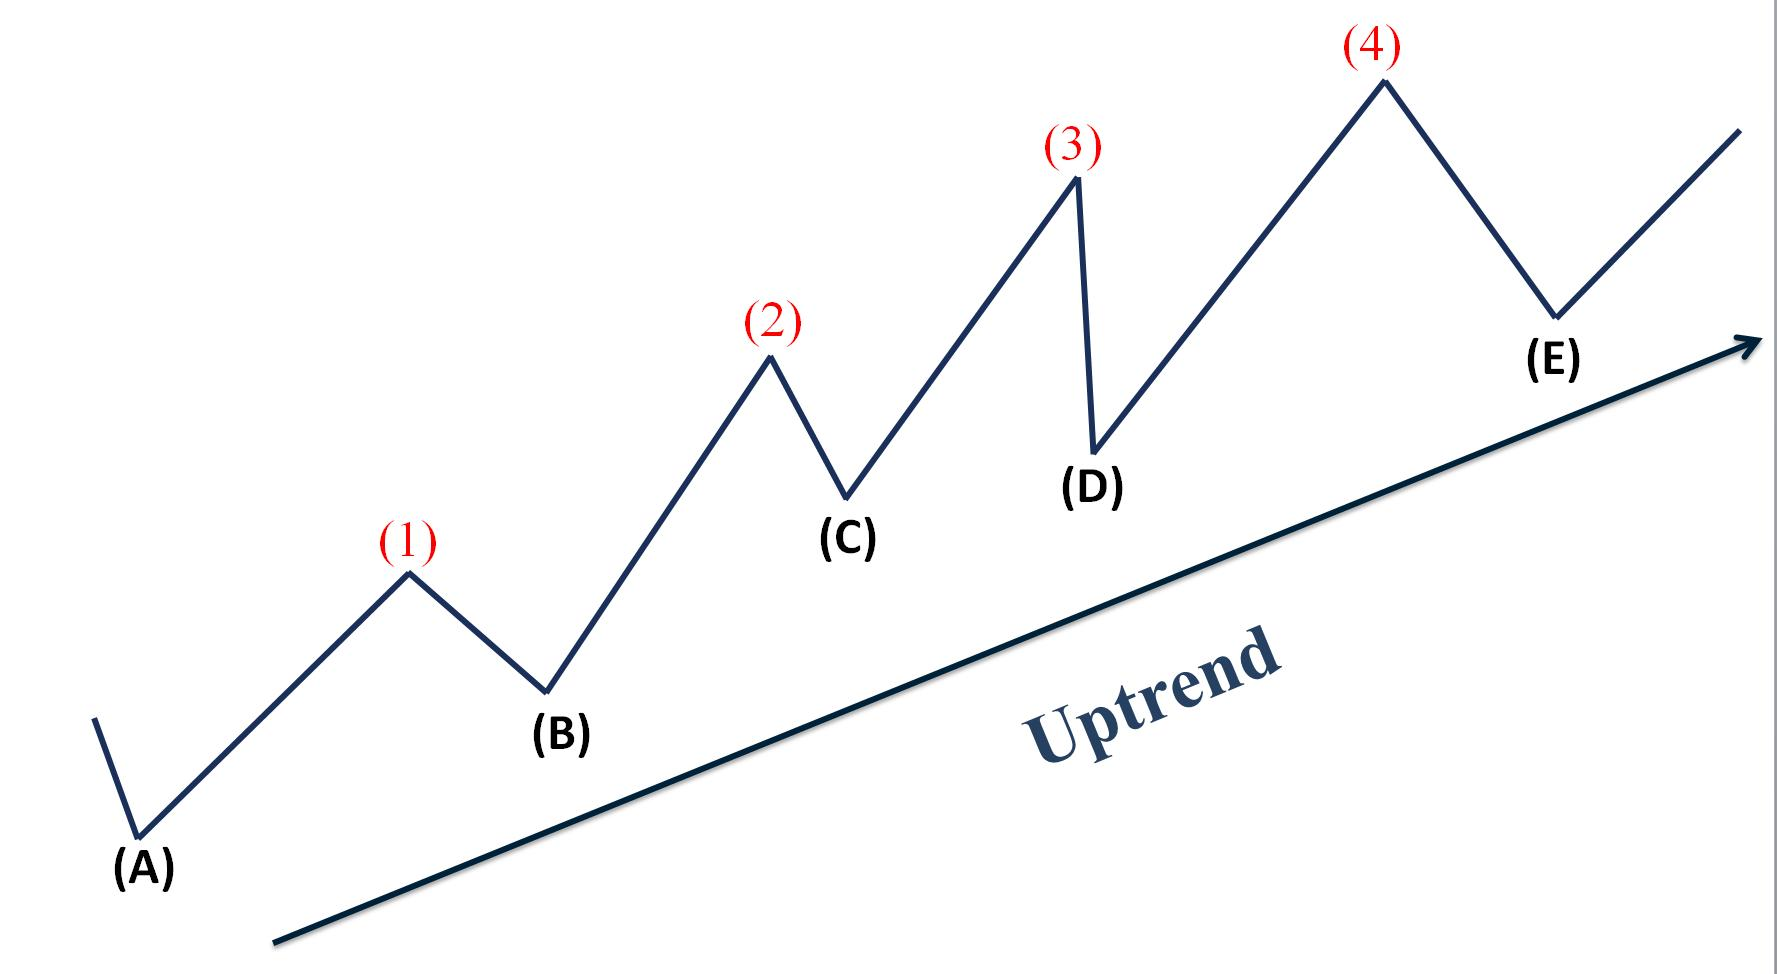 Basic characteristics of an upward trend